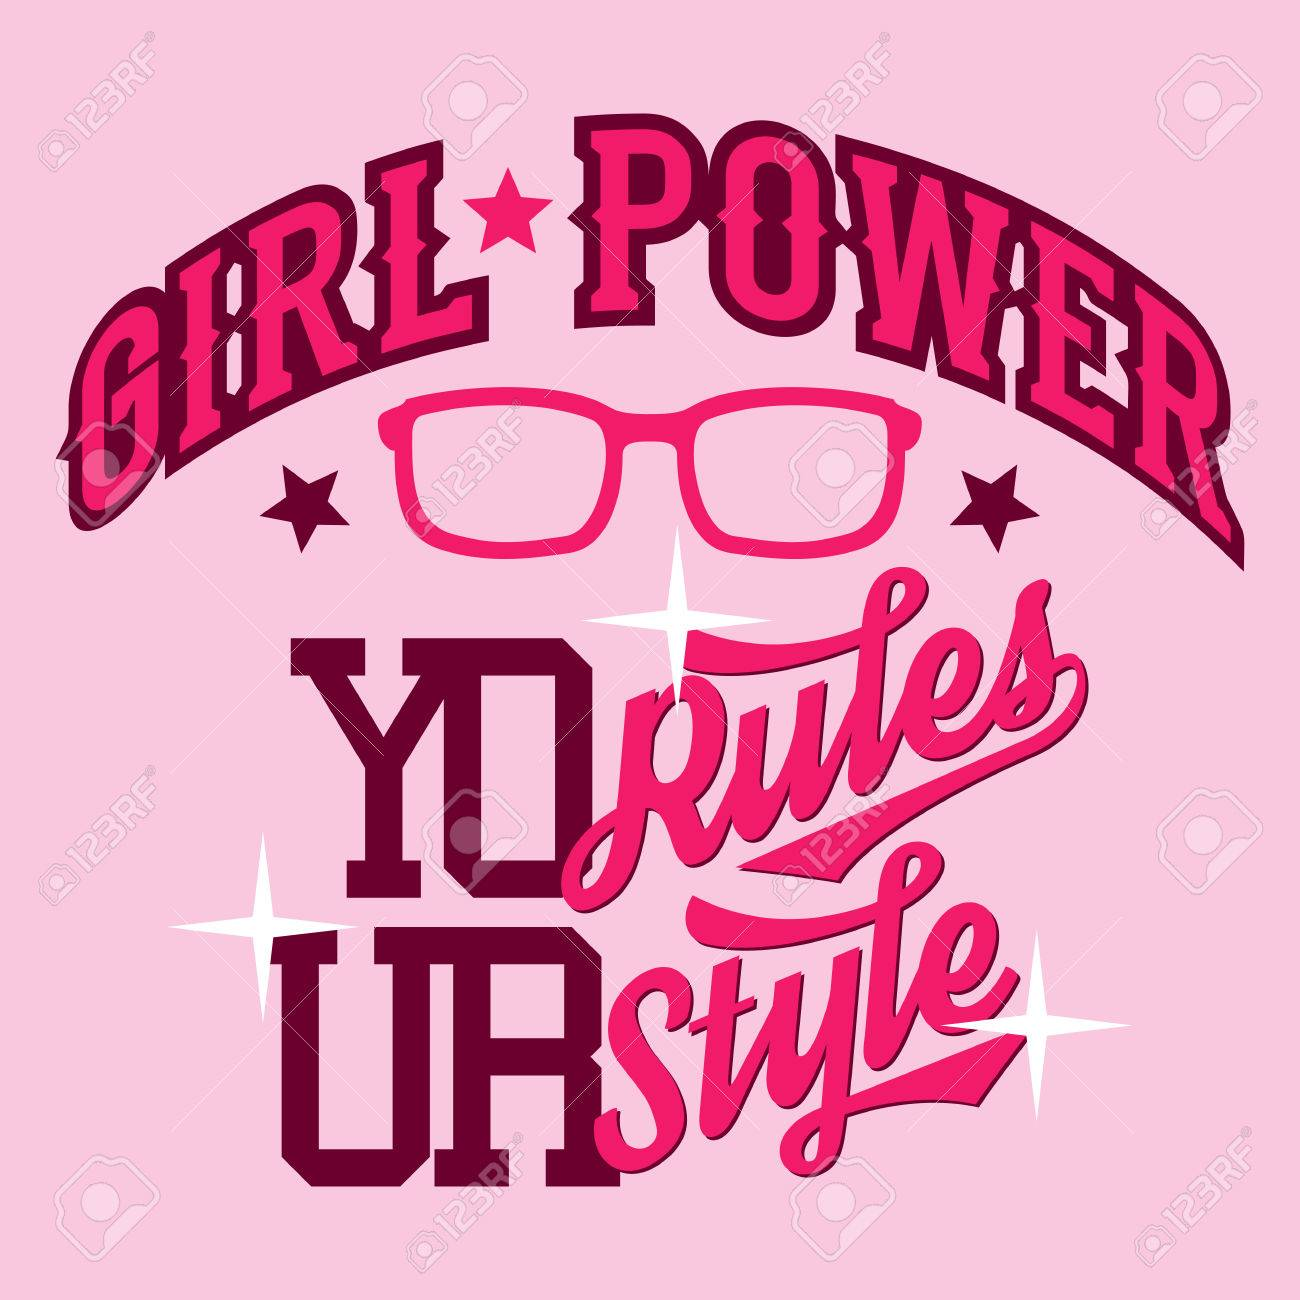 Swag Shirts For Girls Girl Power Swag Style T-shirt